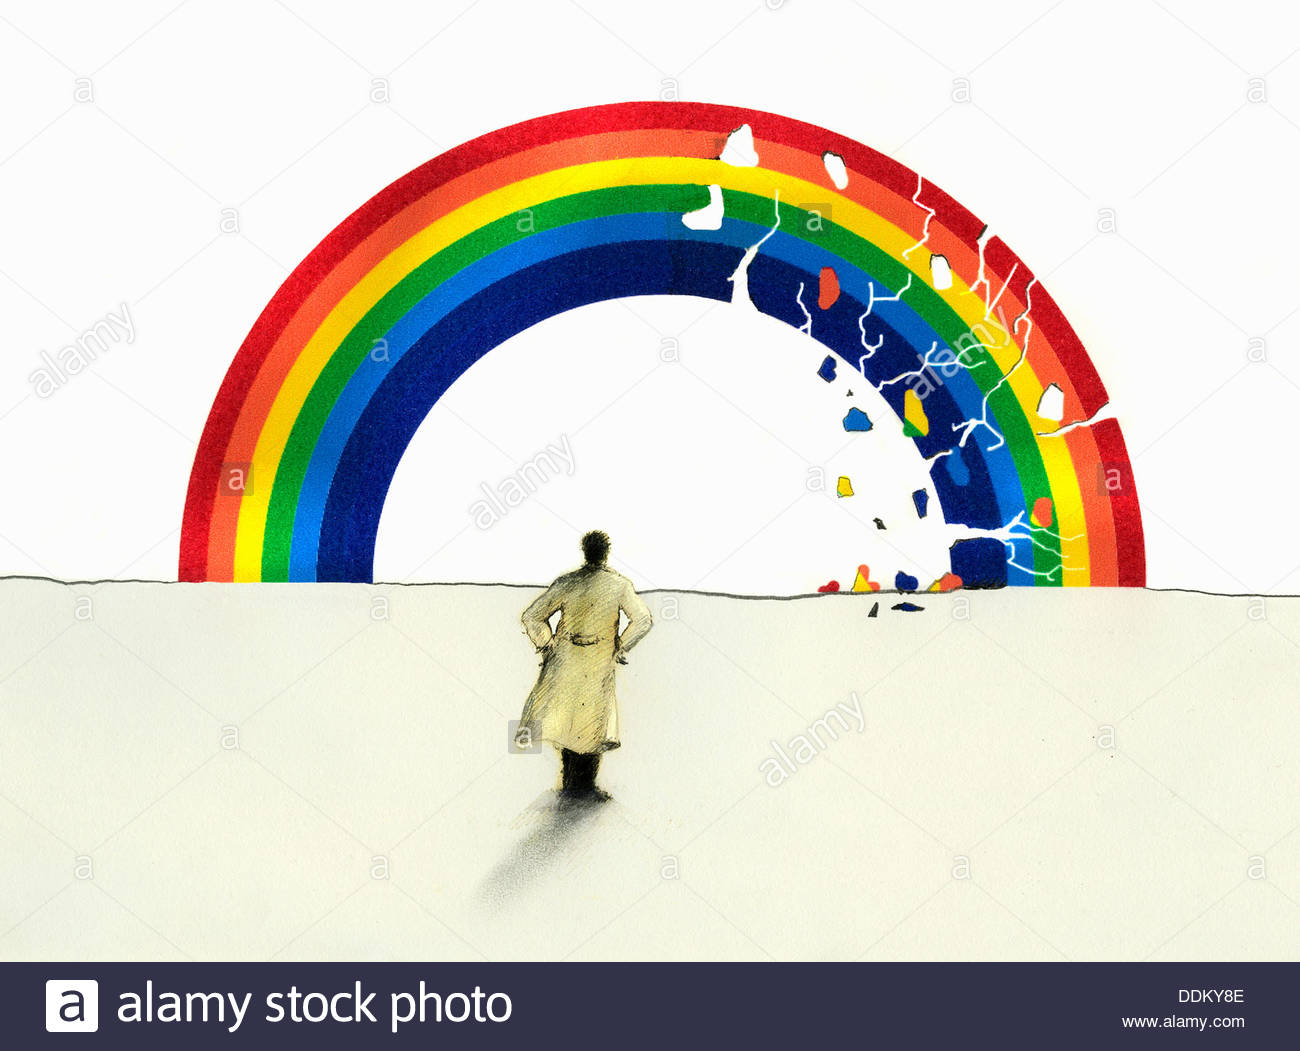 Man in trench coat looking at cracking rainbow - Stock Image